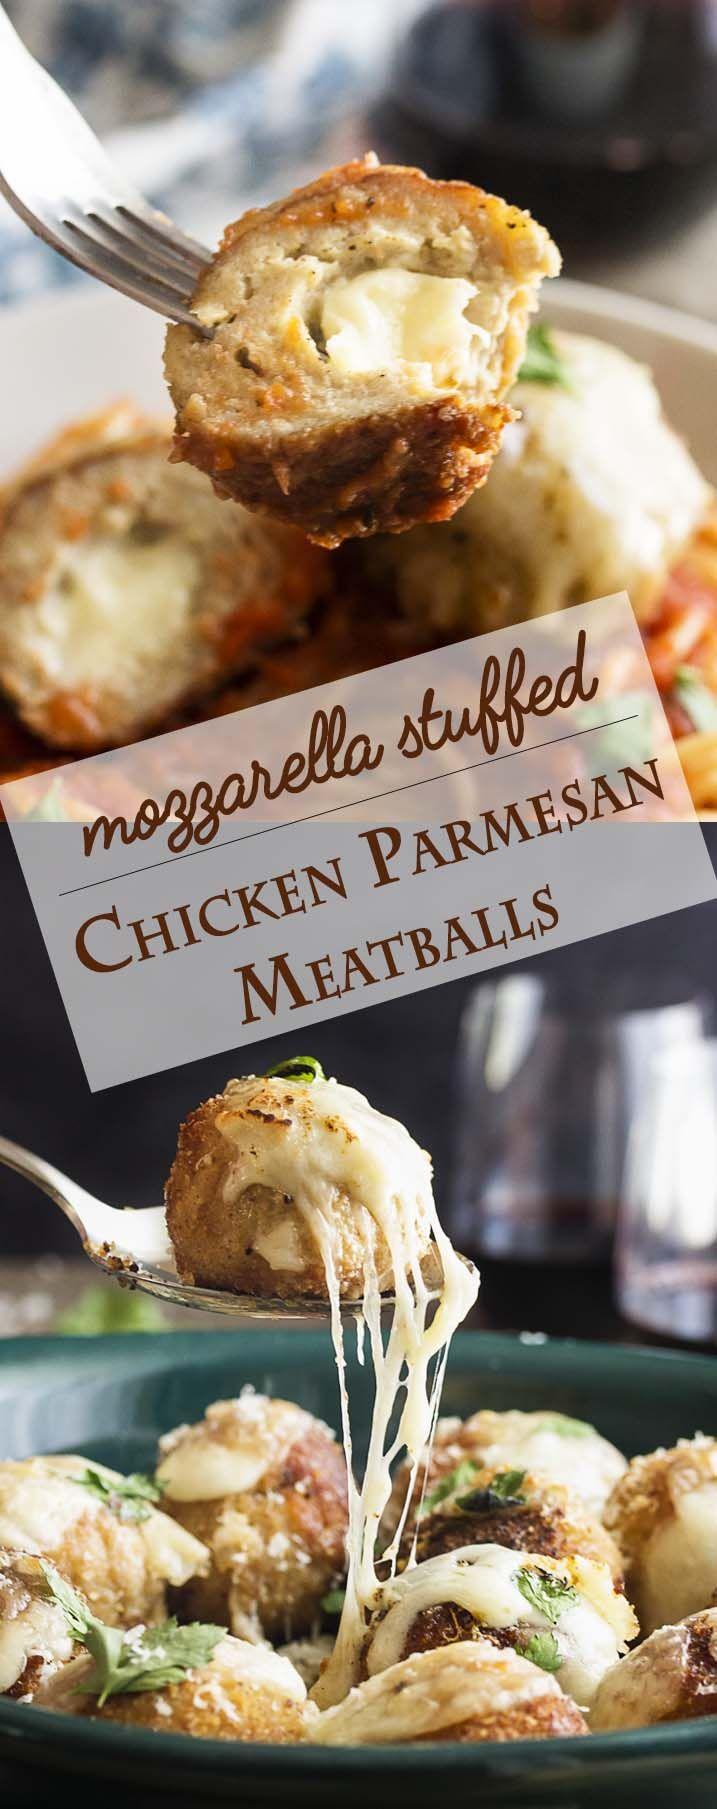 Crispy, mozzarella stuffed and juicy! These chicken parmesan meatballs are full of gooey mozzarella and rolled in breadcrumbs to make a crispy crust. Serve with marinara sauce and pasta. | justalittlebitofbacon.com